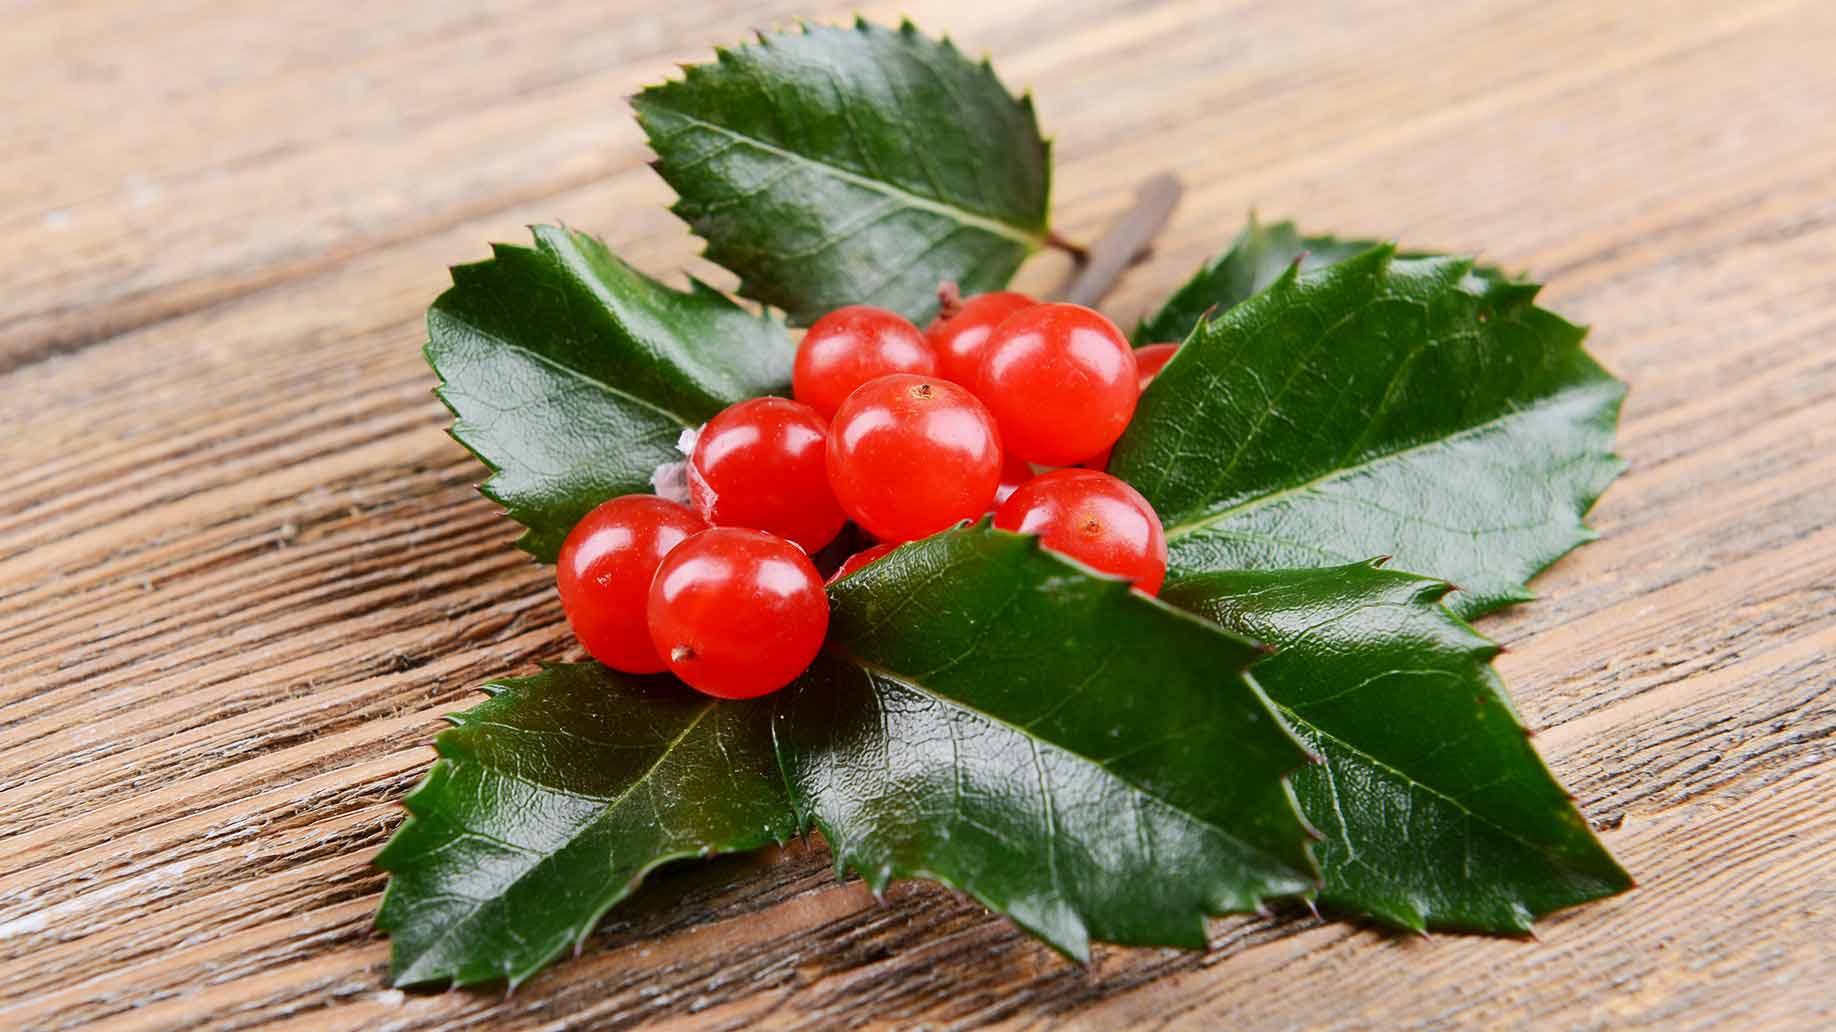 mistletoe herb red berries green leaves natural remedy lowers high blood pressure hypertension